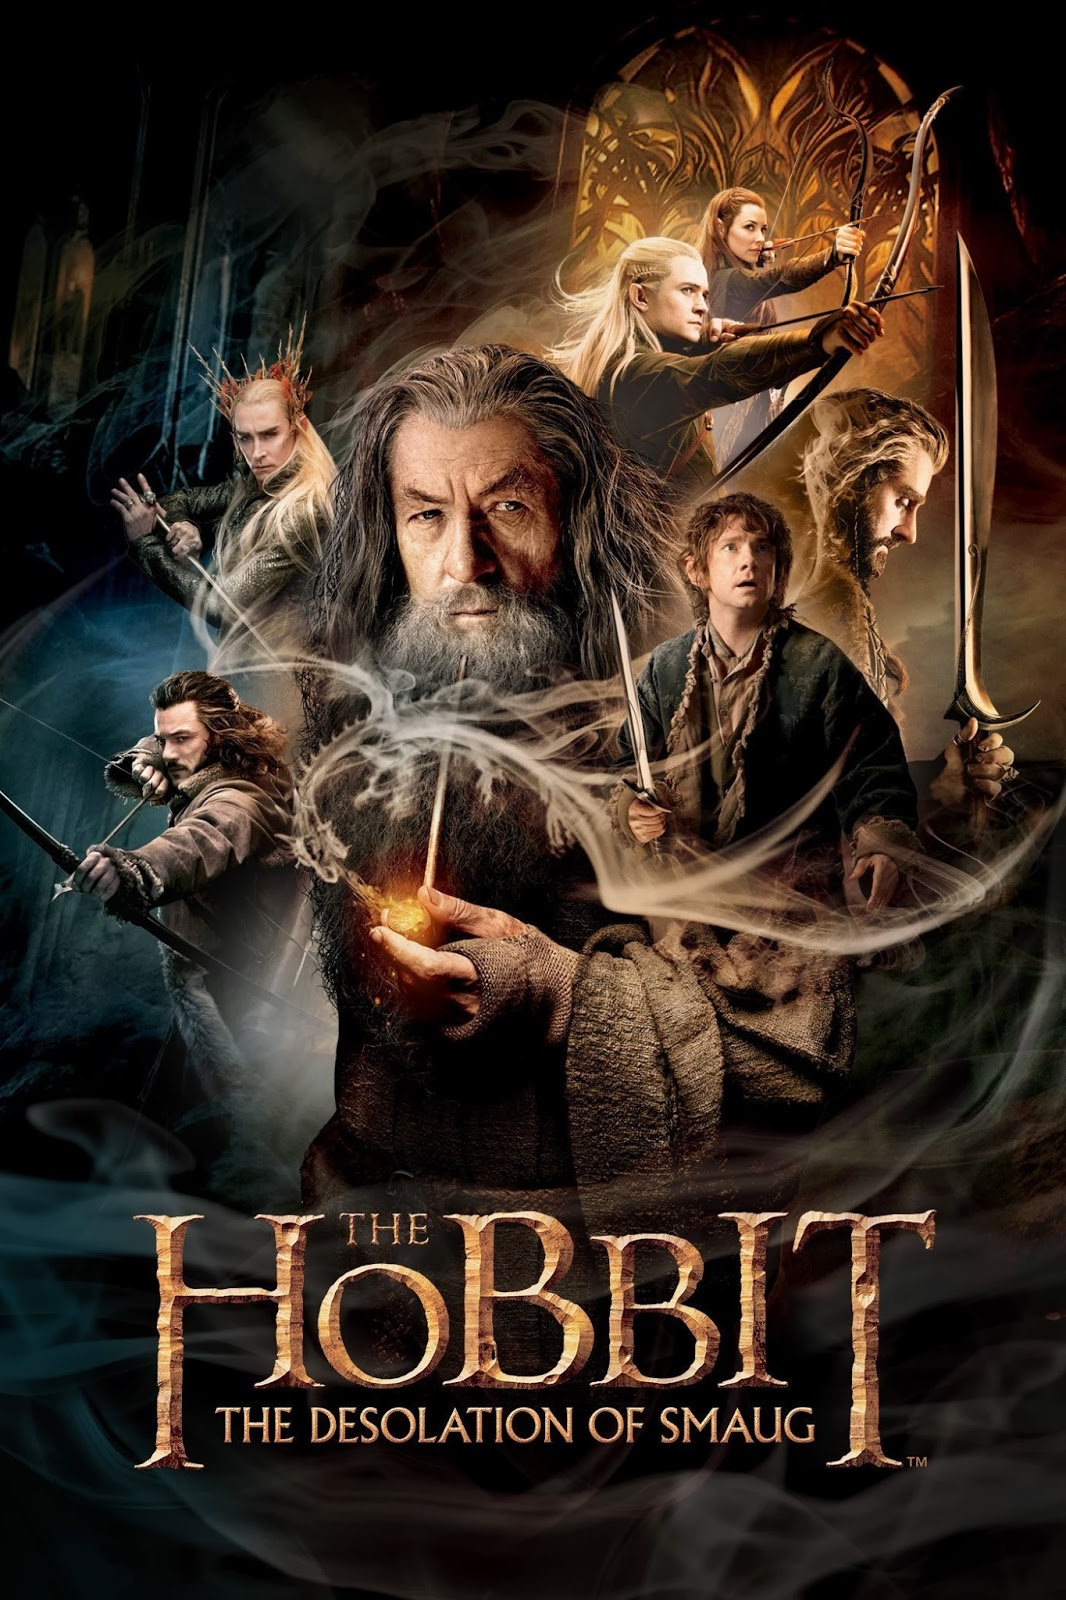 The Hobbit: The Desolation of Smaug (2013) DVDScr 700MB